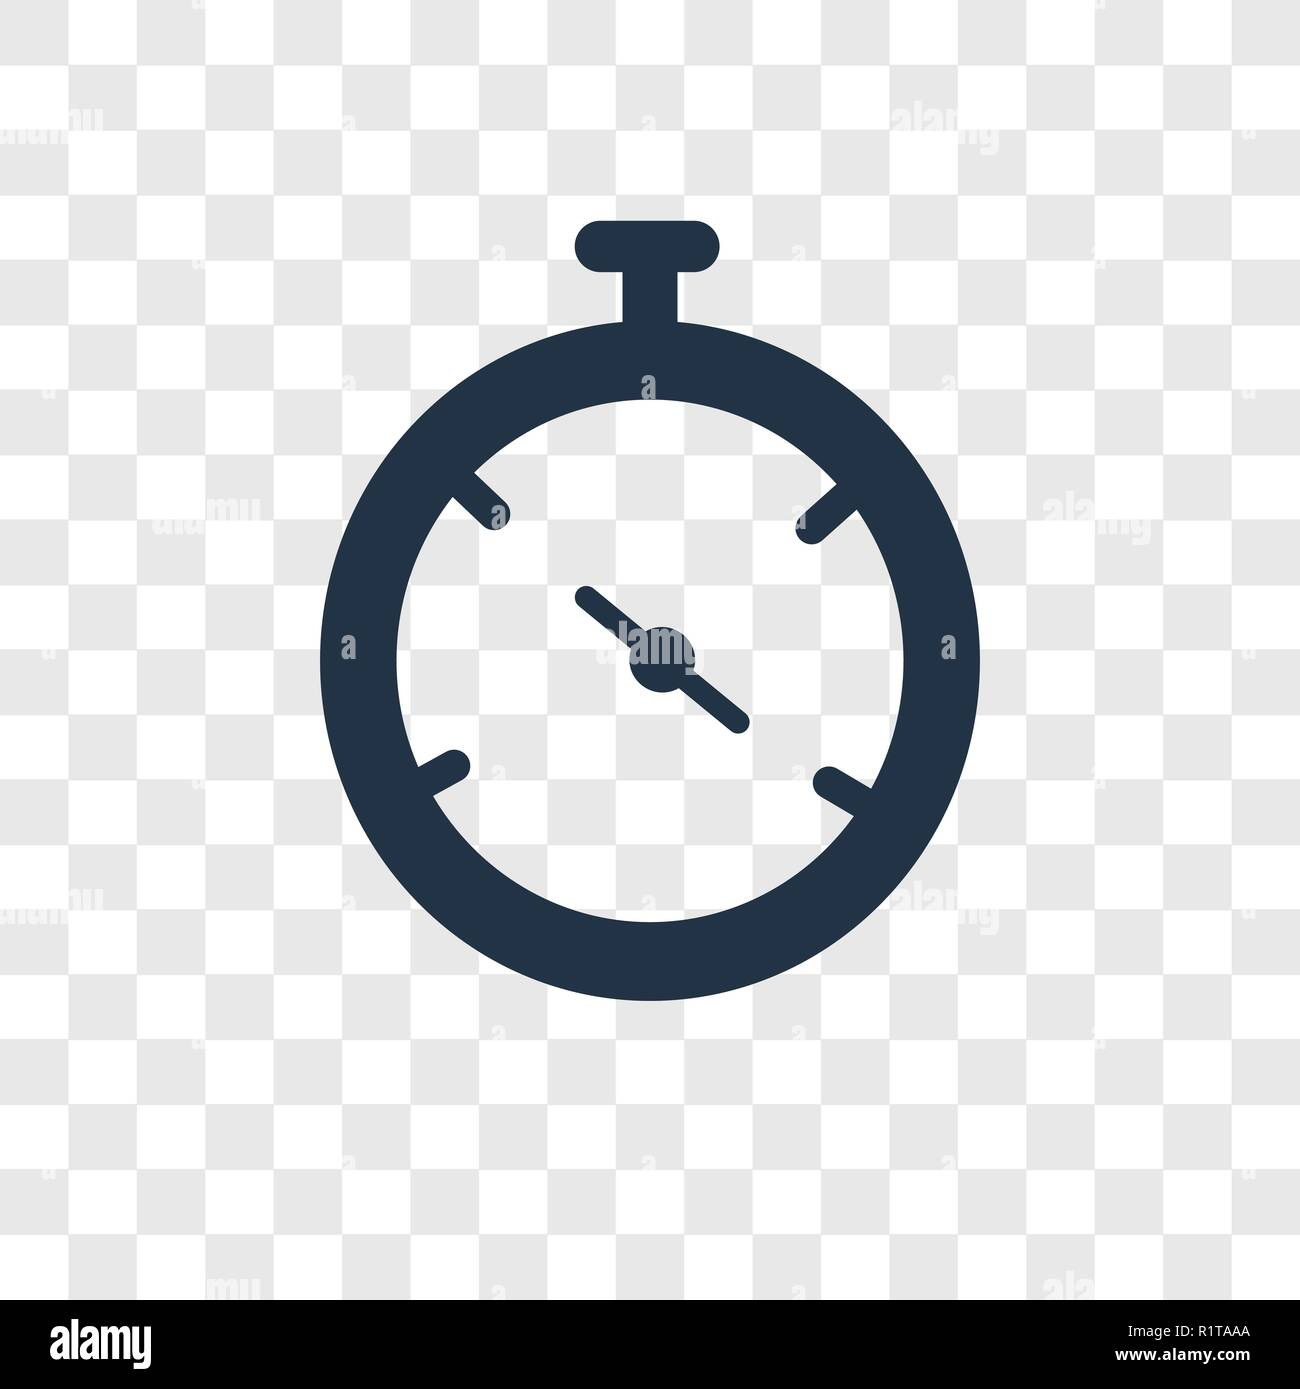 Stopclock vector icon isolated on transparent background